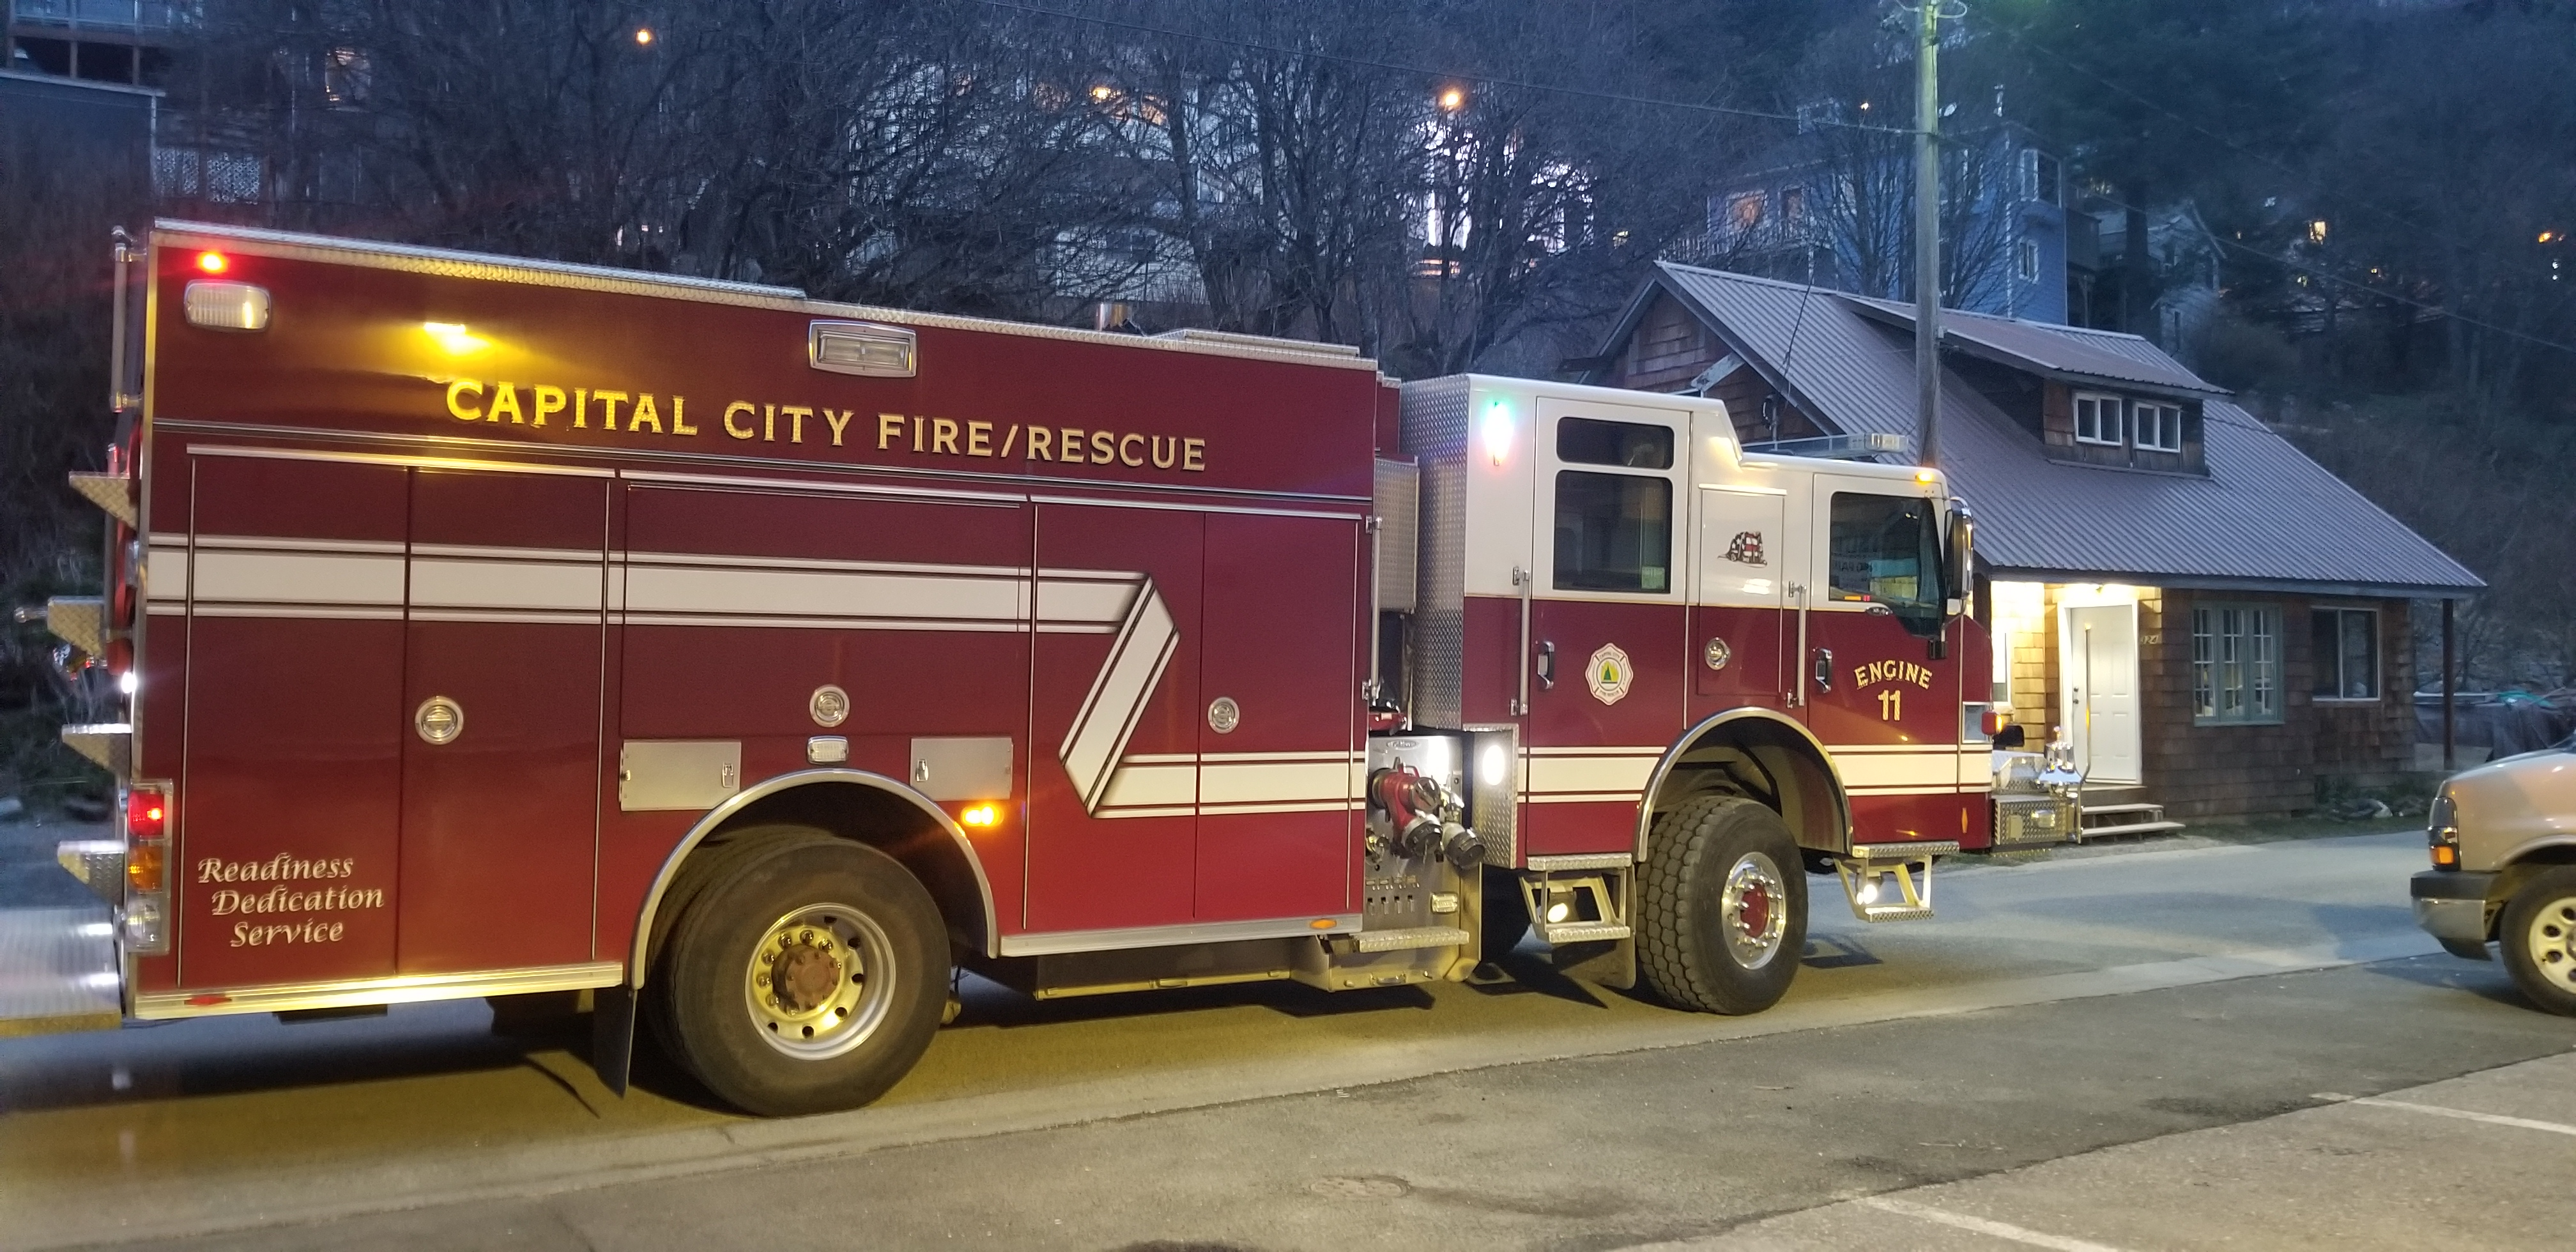 Capital-city-fire-truck.jpg